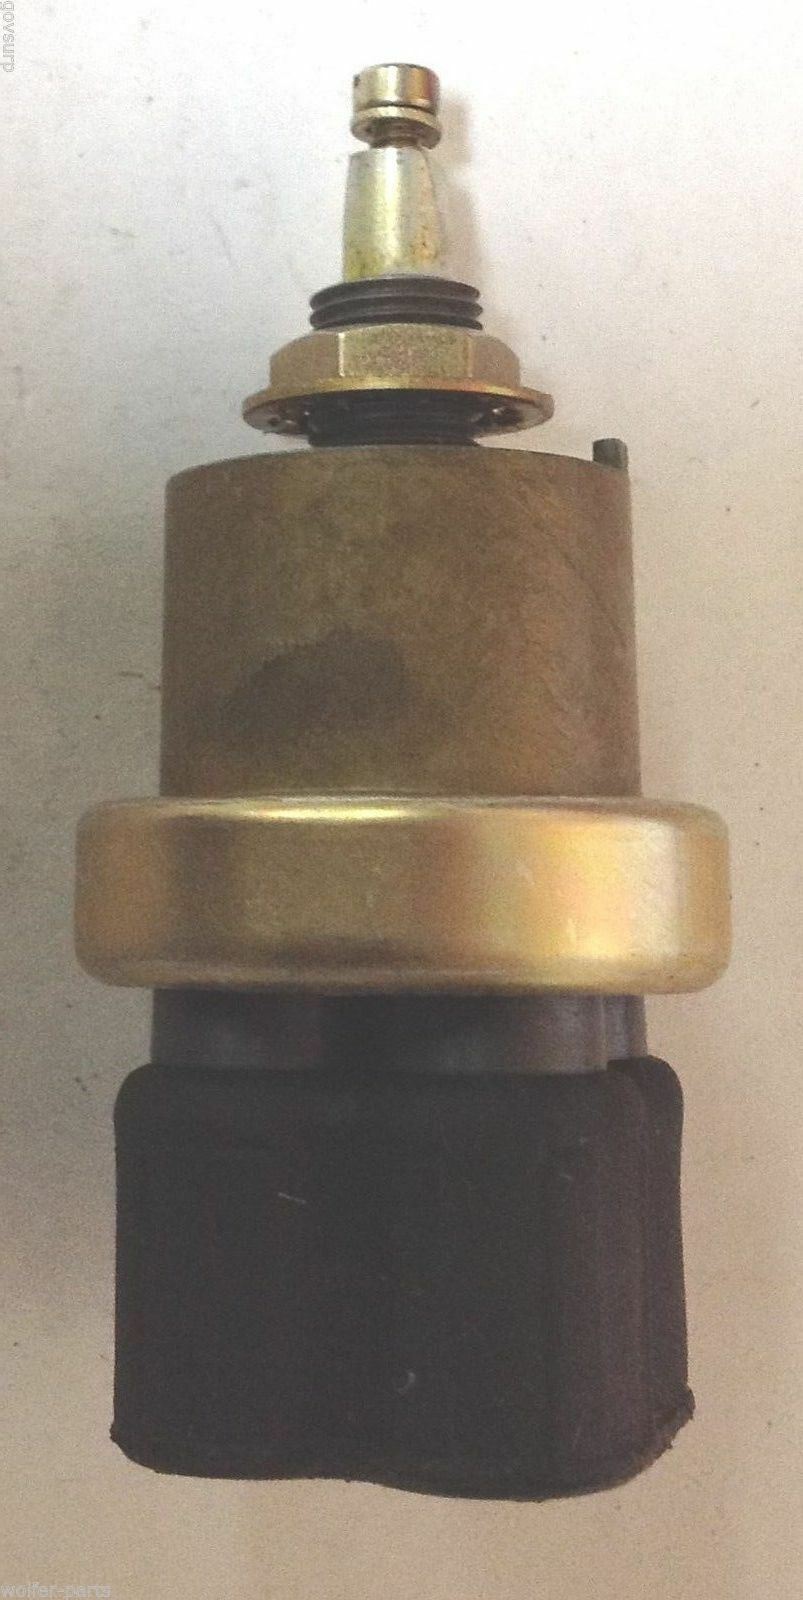 SWITCH , ROTARY (10AMP) ;  MS39060-1  5930-00-898-0500 12375495  898-0500  4776A